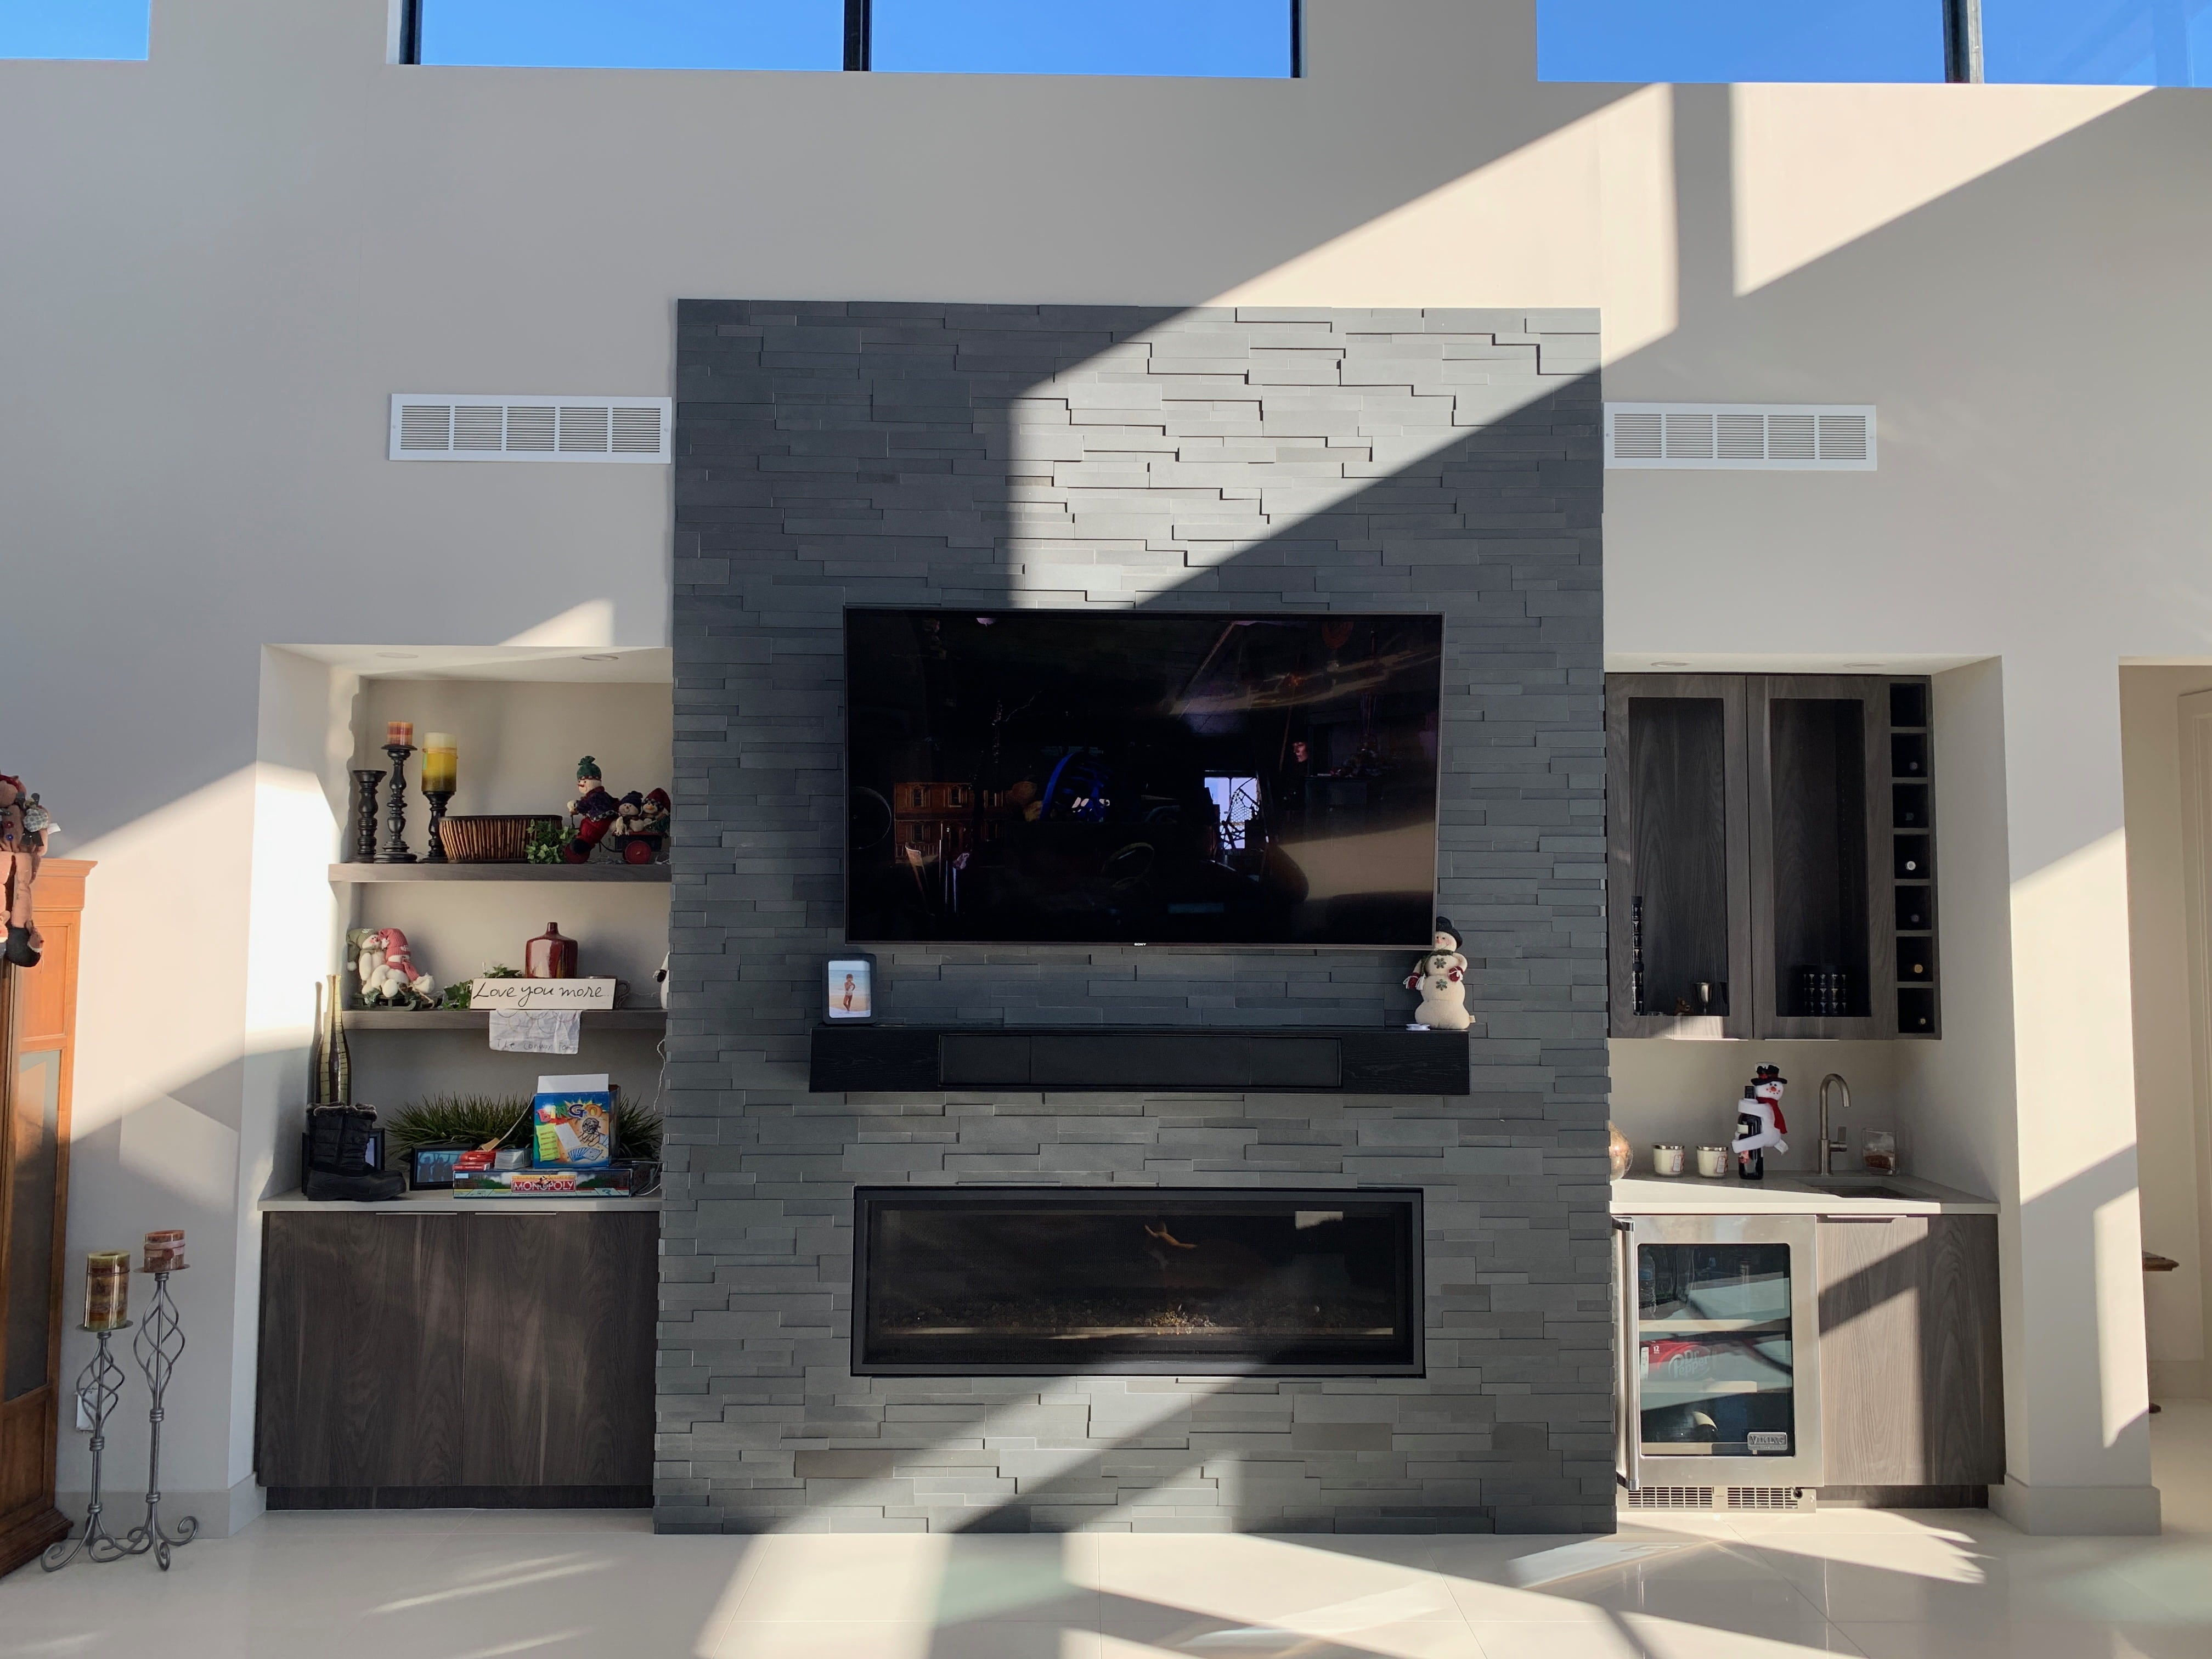 Norstone Aksent 3D Stone Panels in Ash Grey used on a modern fireplace with a large tv mounted above a linear gas insert